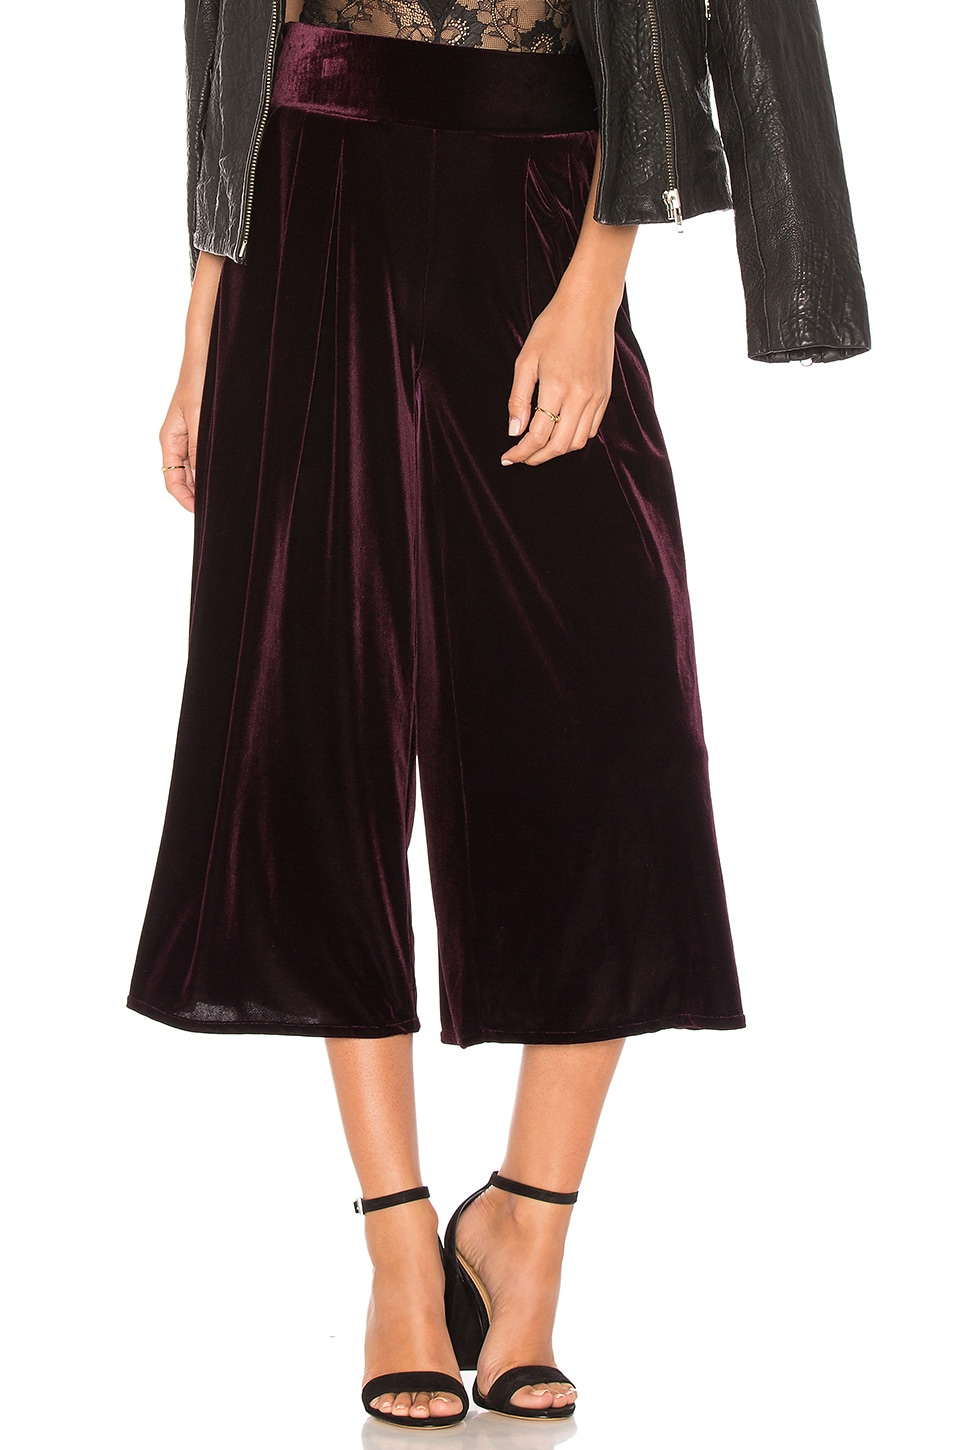 MISA Los Angeles Ilian Pant in Plum Velvet